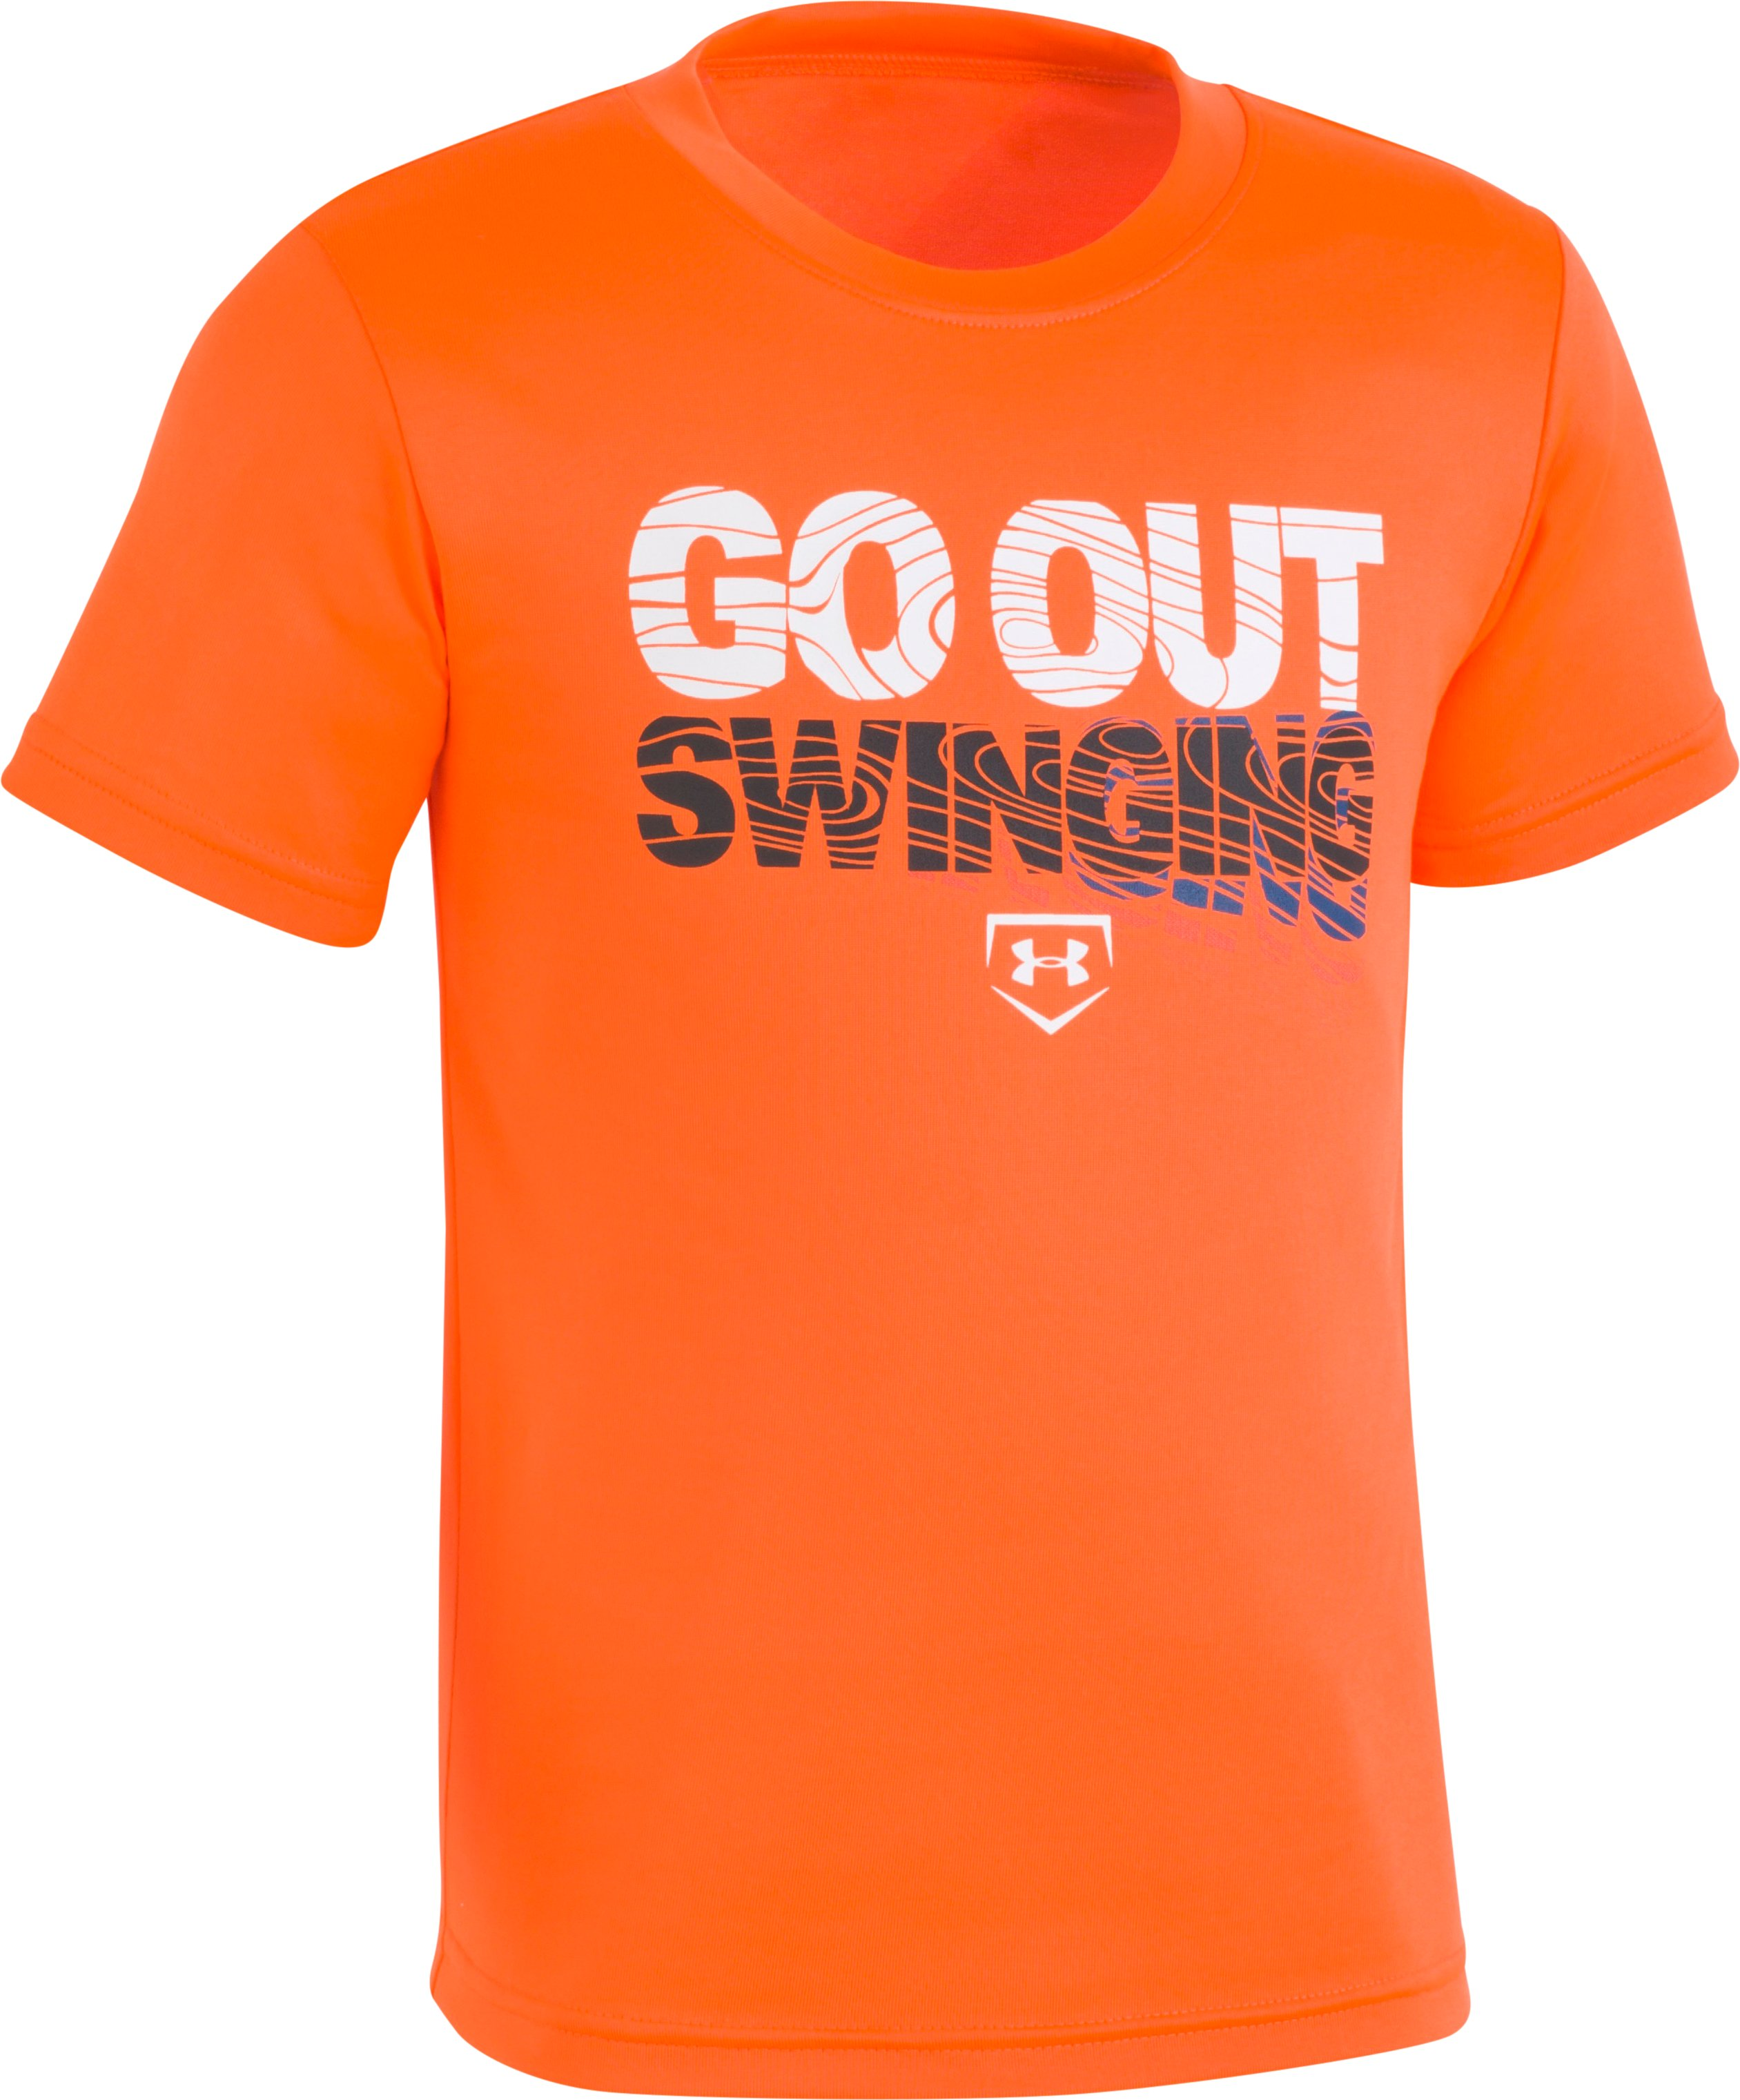 Boys' Pre-School UA Go Out Swinging T-Shirt, MAGMA ORANGE, zoomed